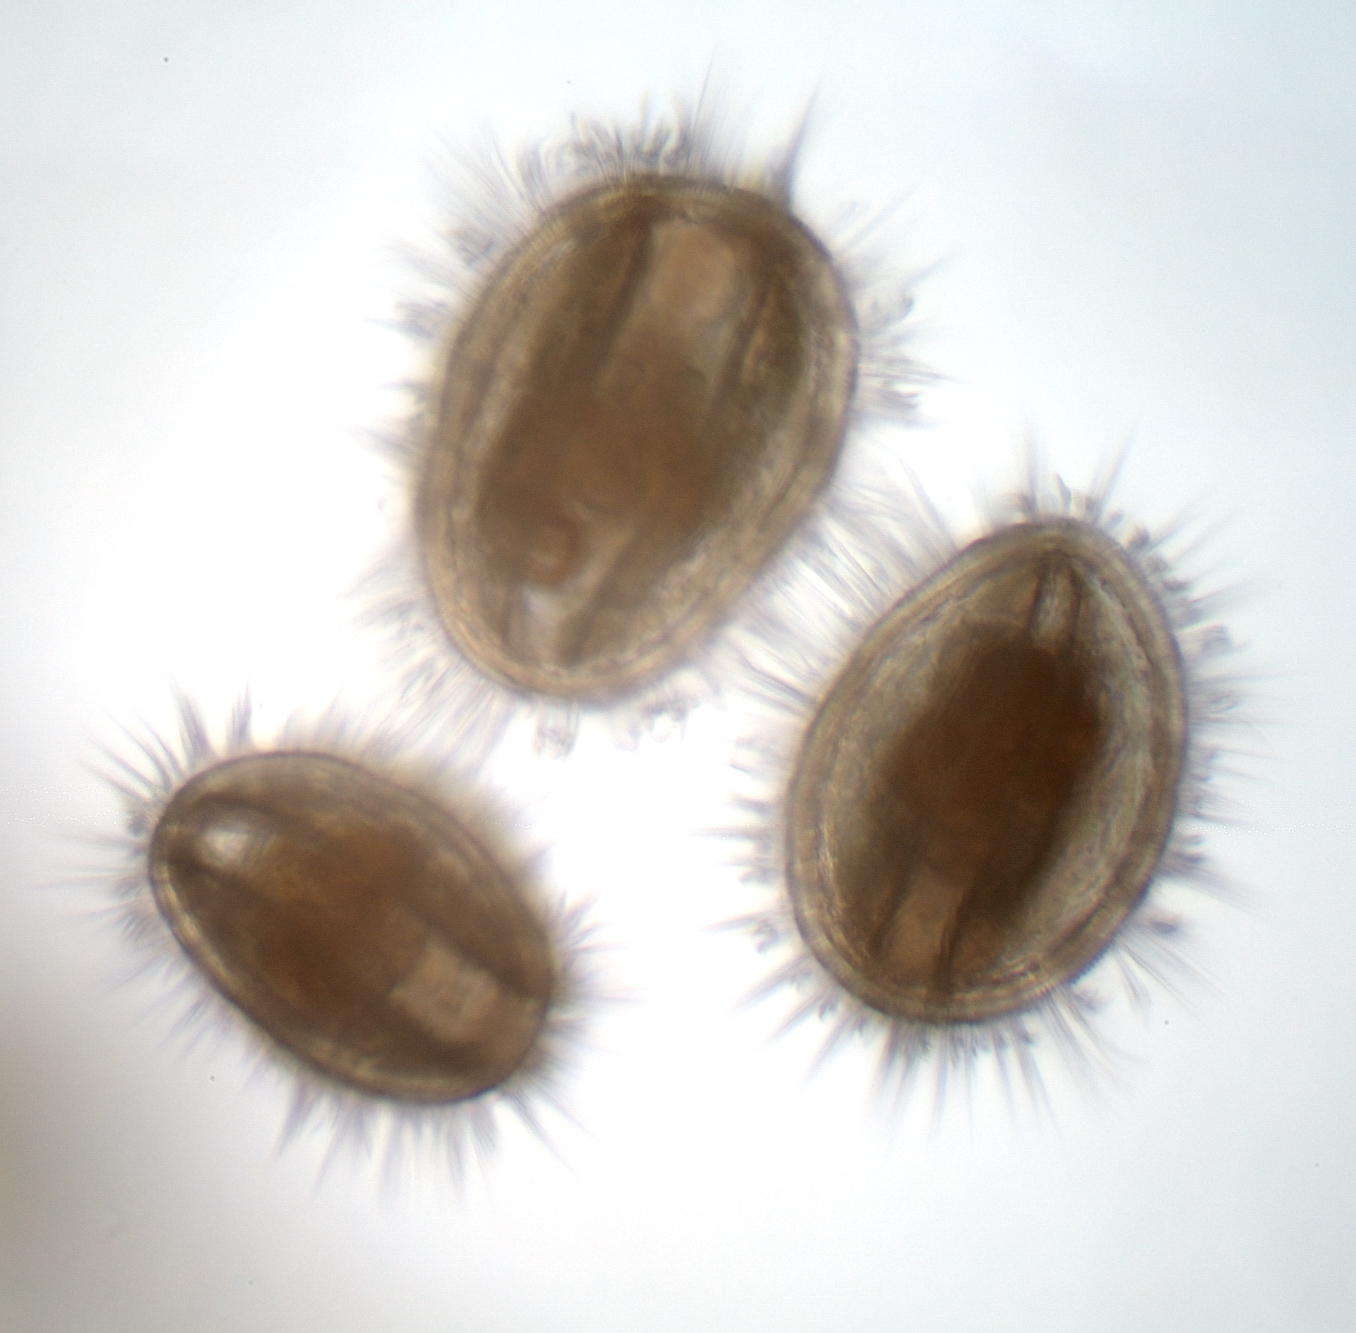 picture of oyster larvae